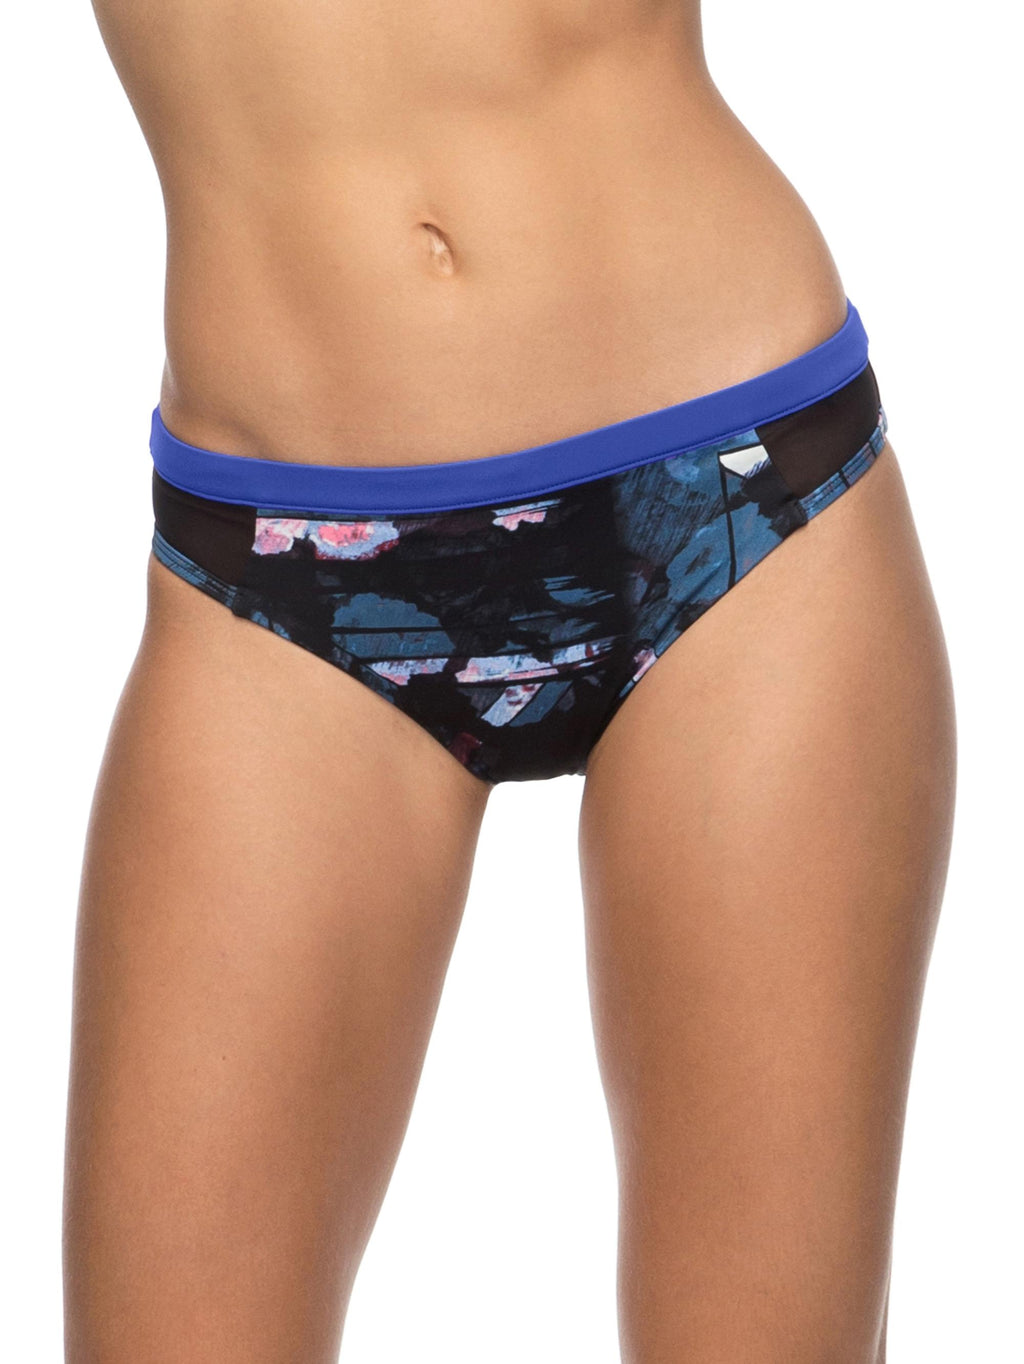 Keep It Roxy Scooter Bikini Bottom - Women's